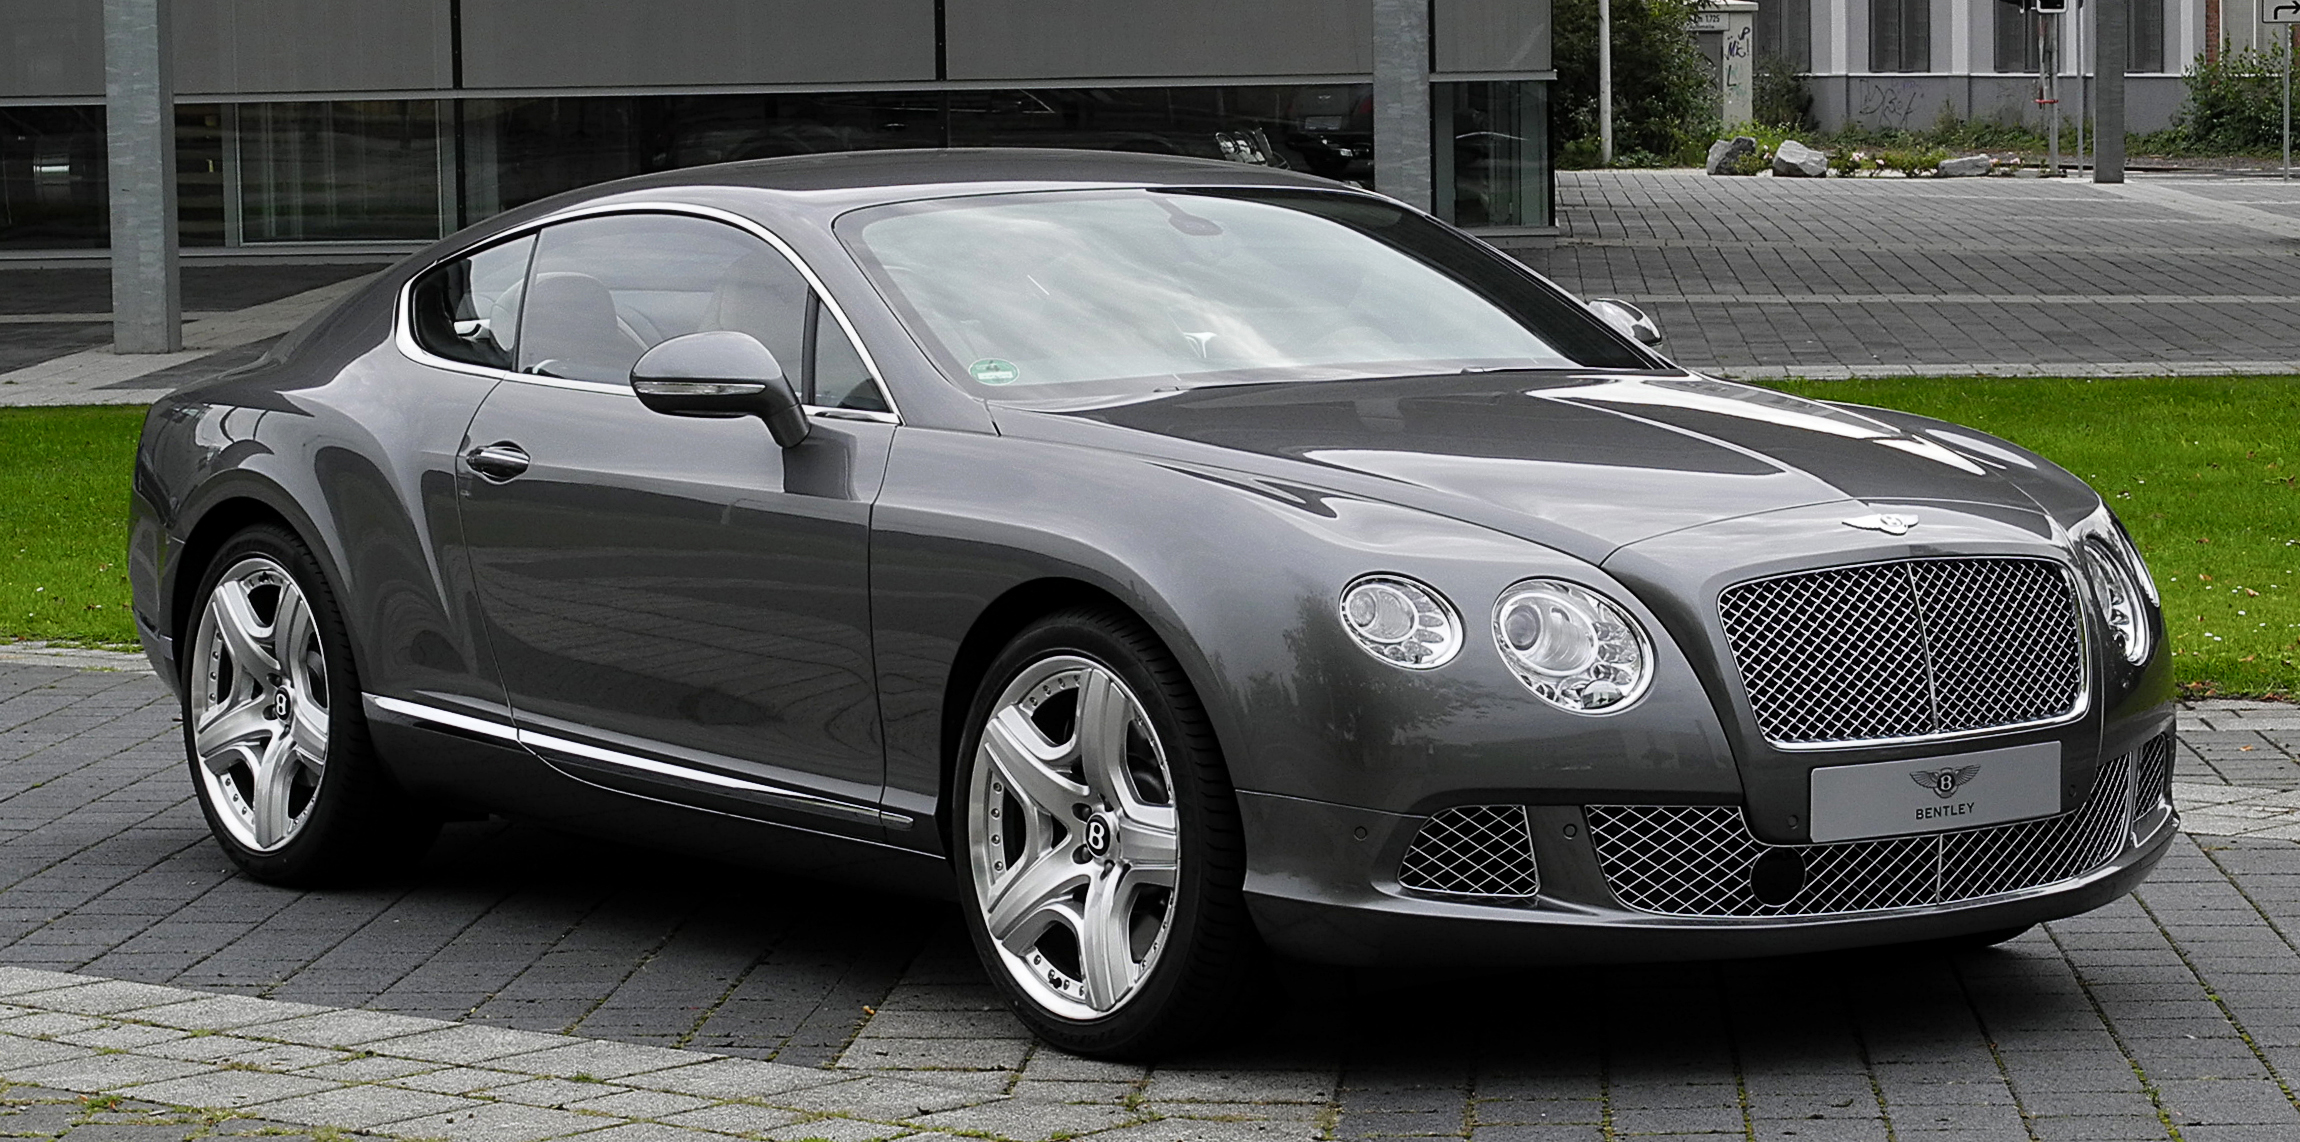 cars spur top price bentley speed flying sedan door